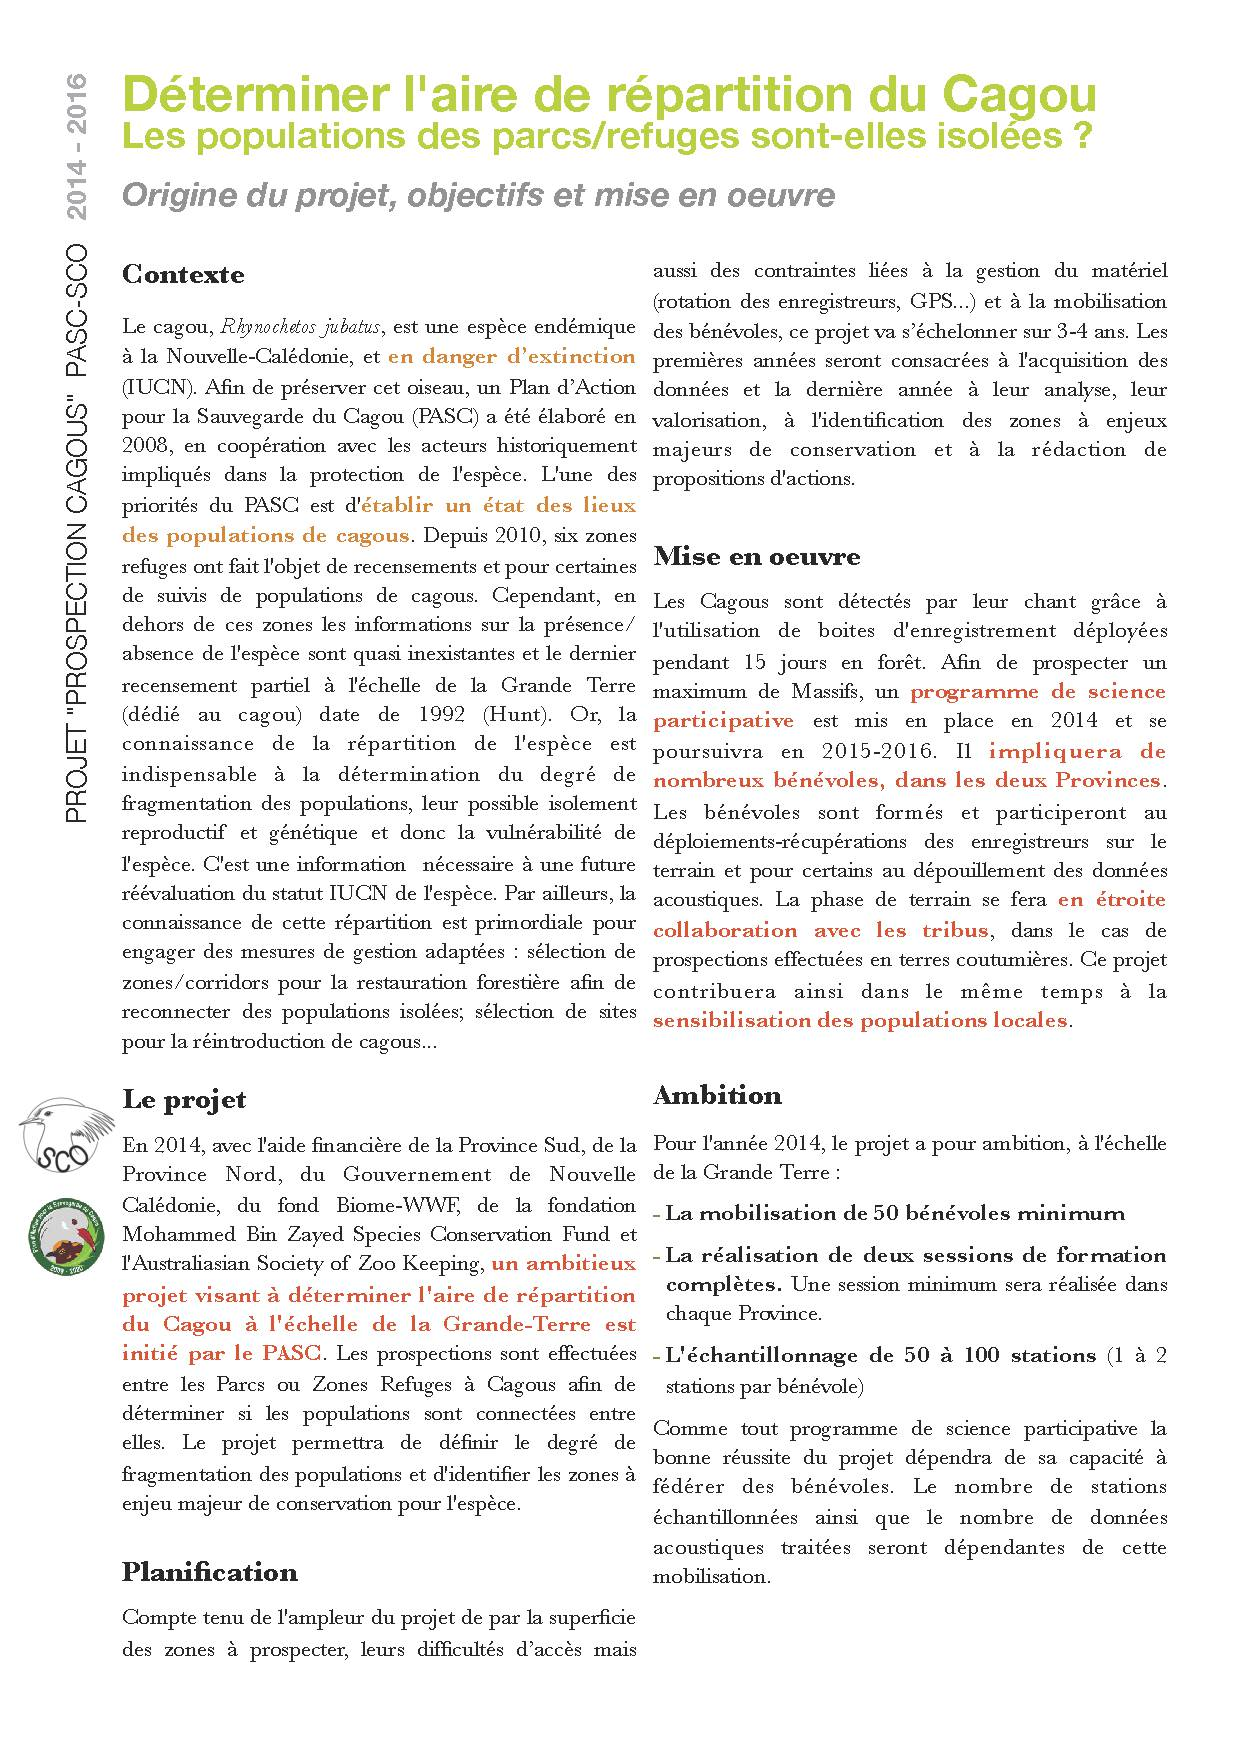 p2 Projet PROSPECTION CAGOU 2014 - Programme de science participative R